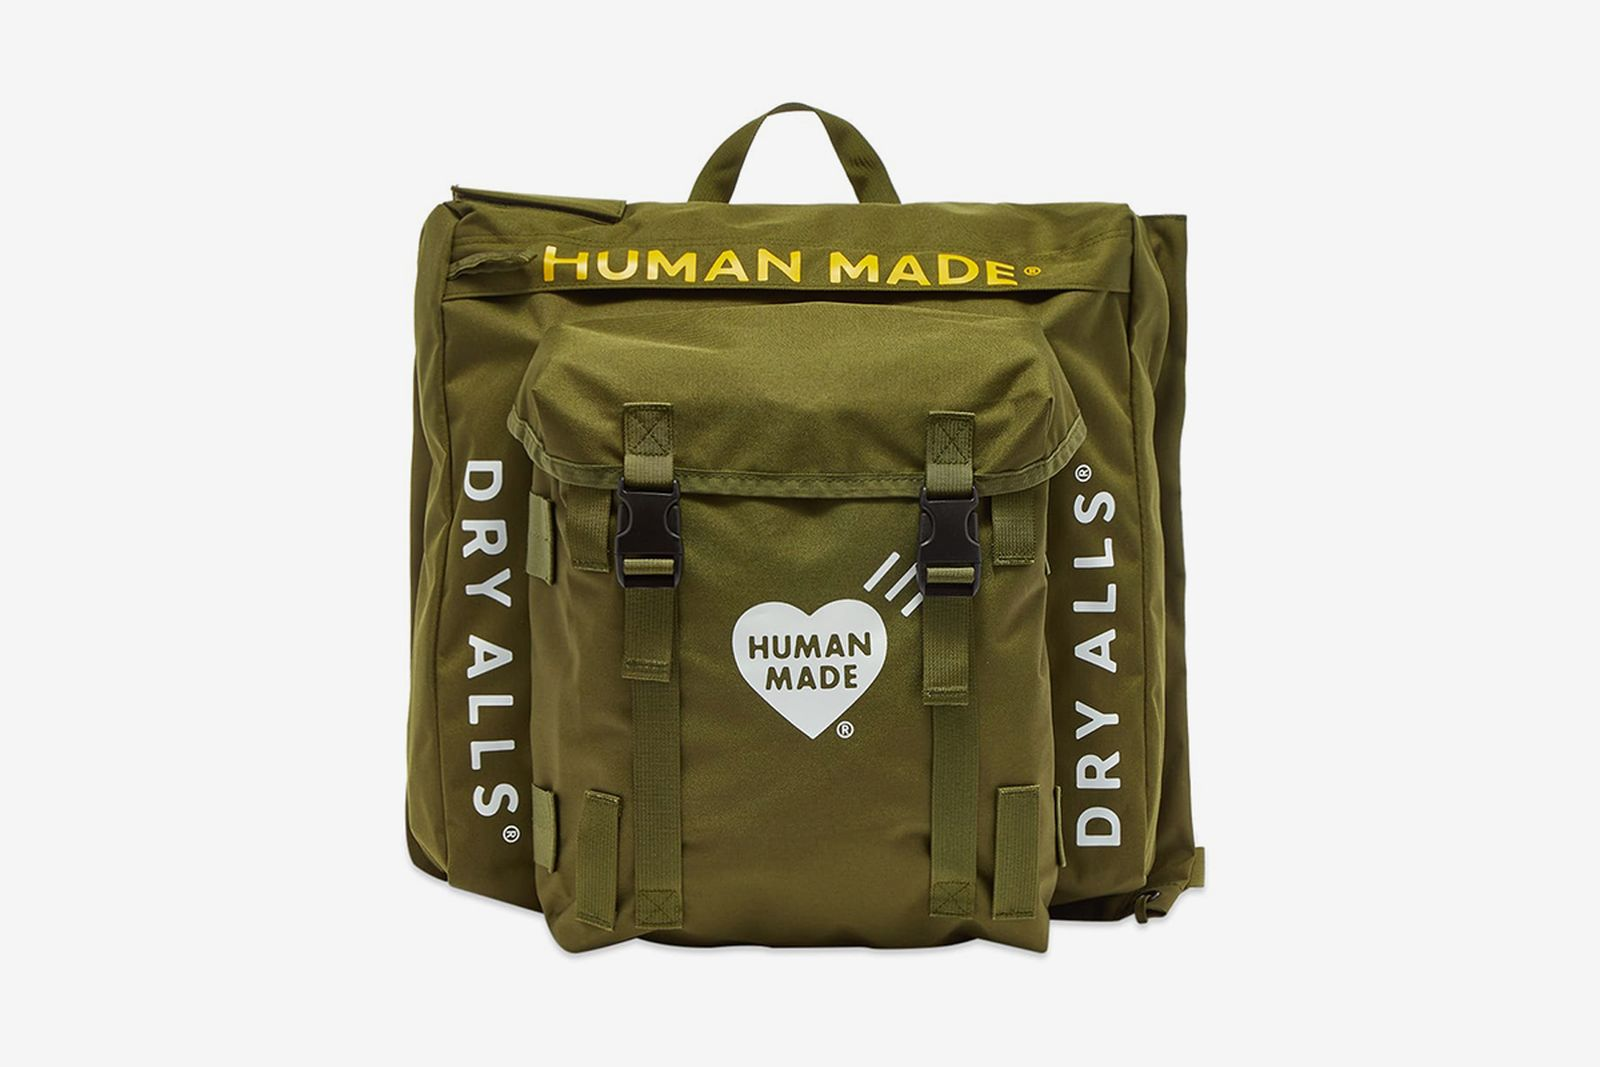 human-made-military-rucksack---olive-drab---_hm19gd035-old_1